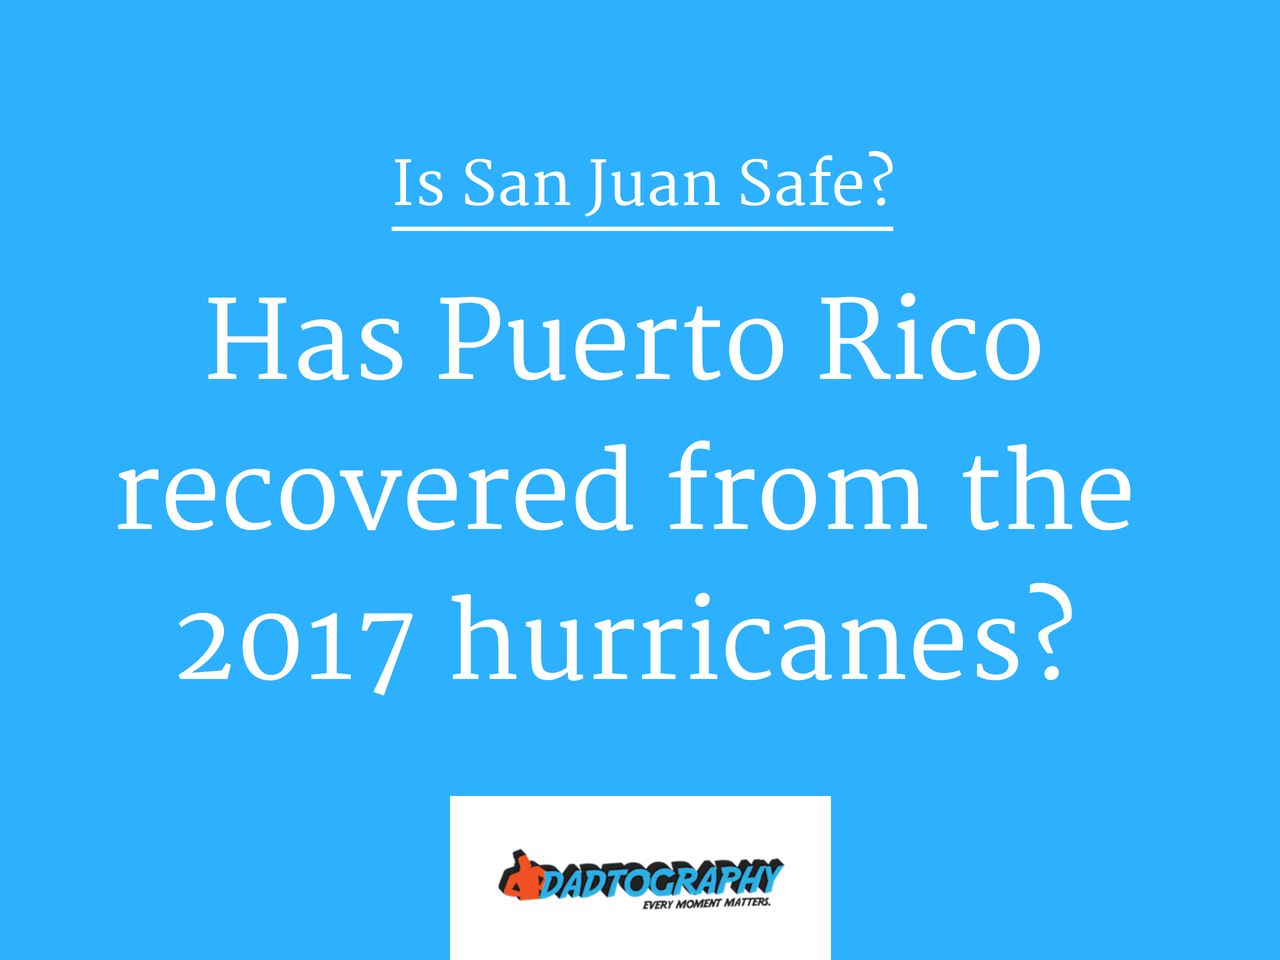 Is San Juan Safe - Has Puerto Rico recovered?